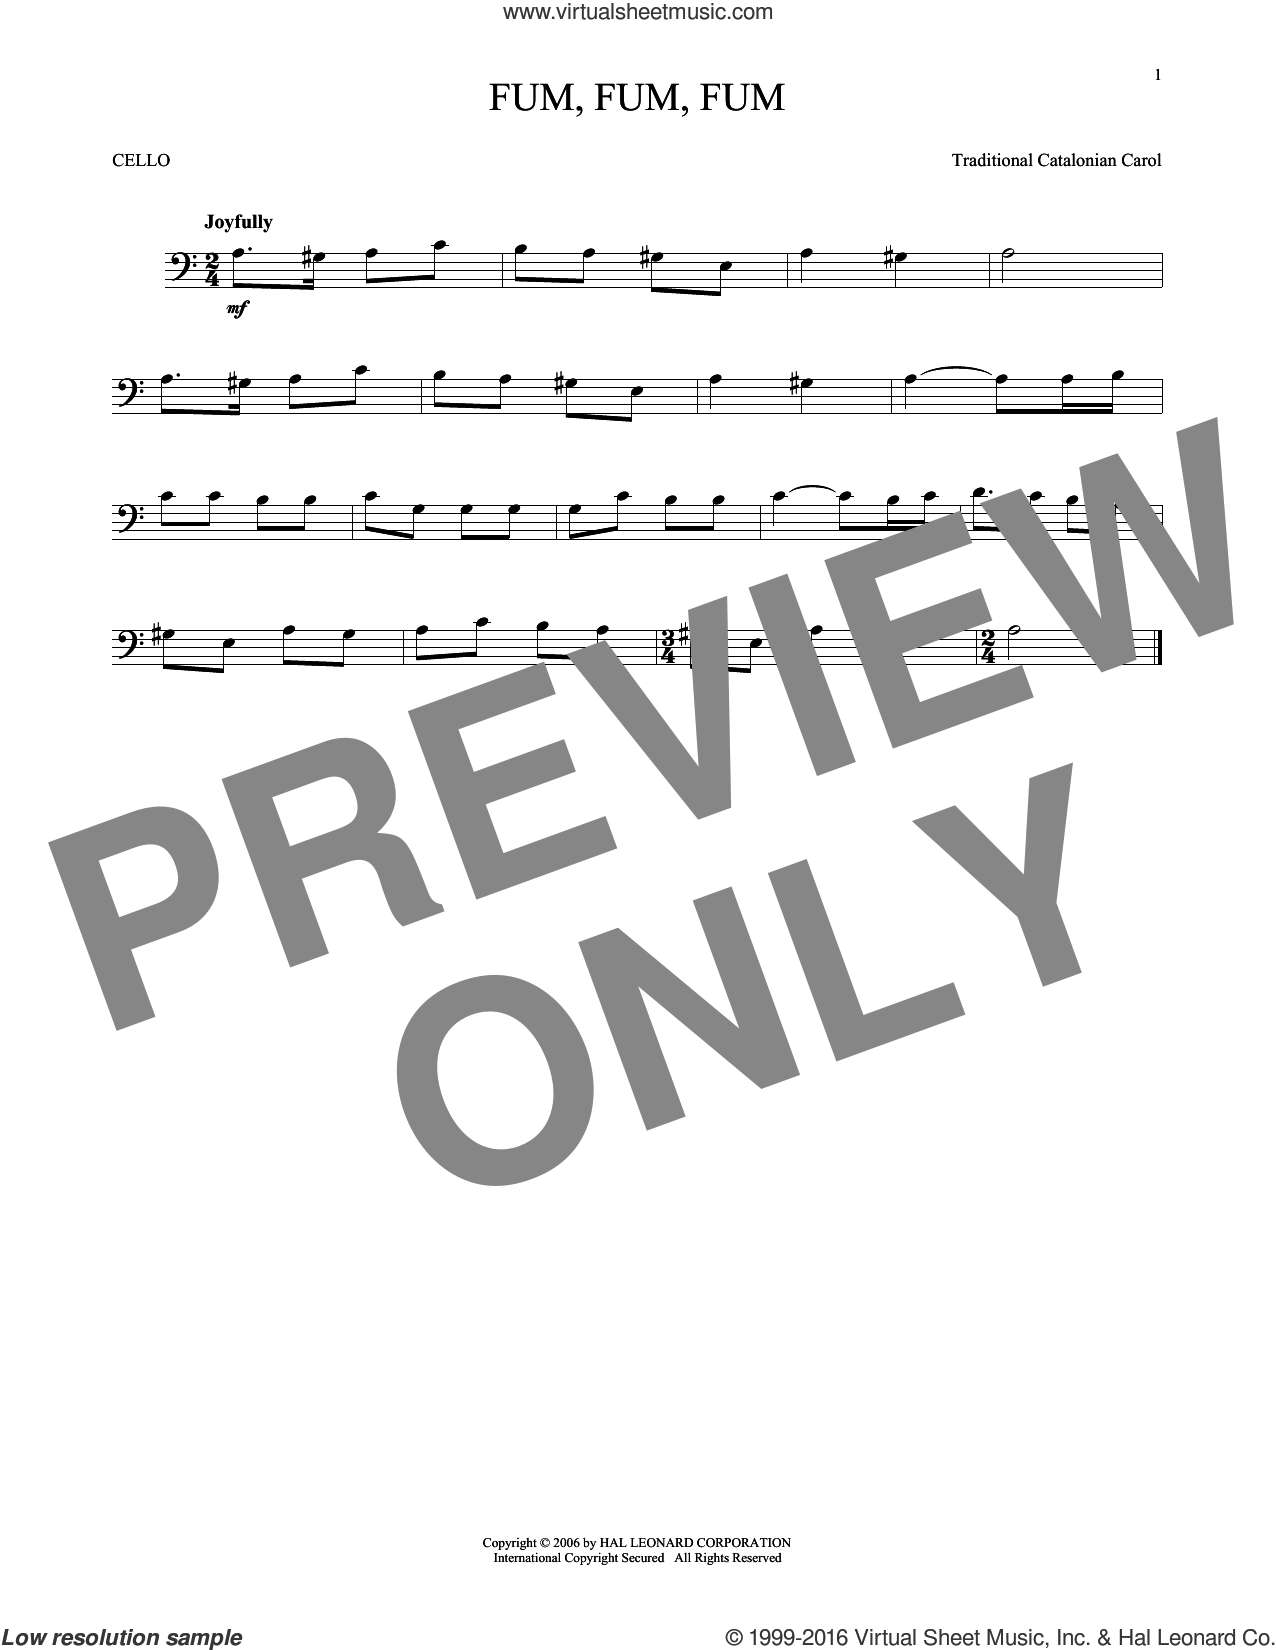 Fum, Fum, Fum sheet music for cello solo, intermediate skill level